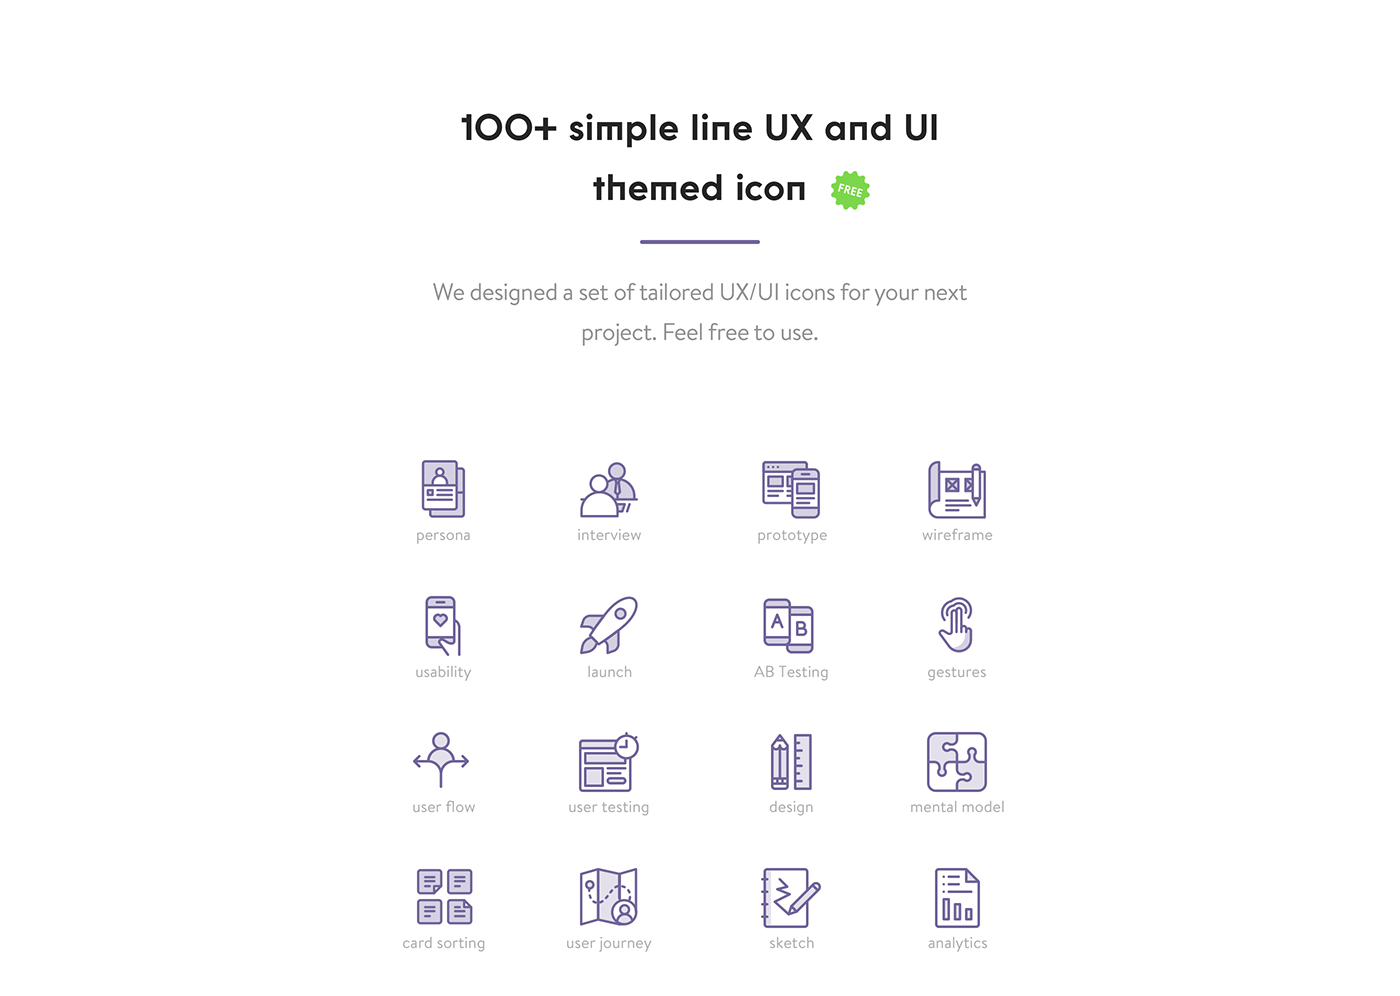 download 100 vector ux and ui theme icon free free design data